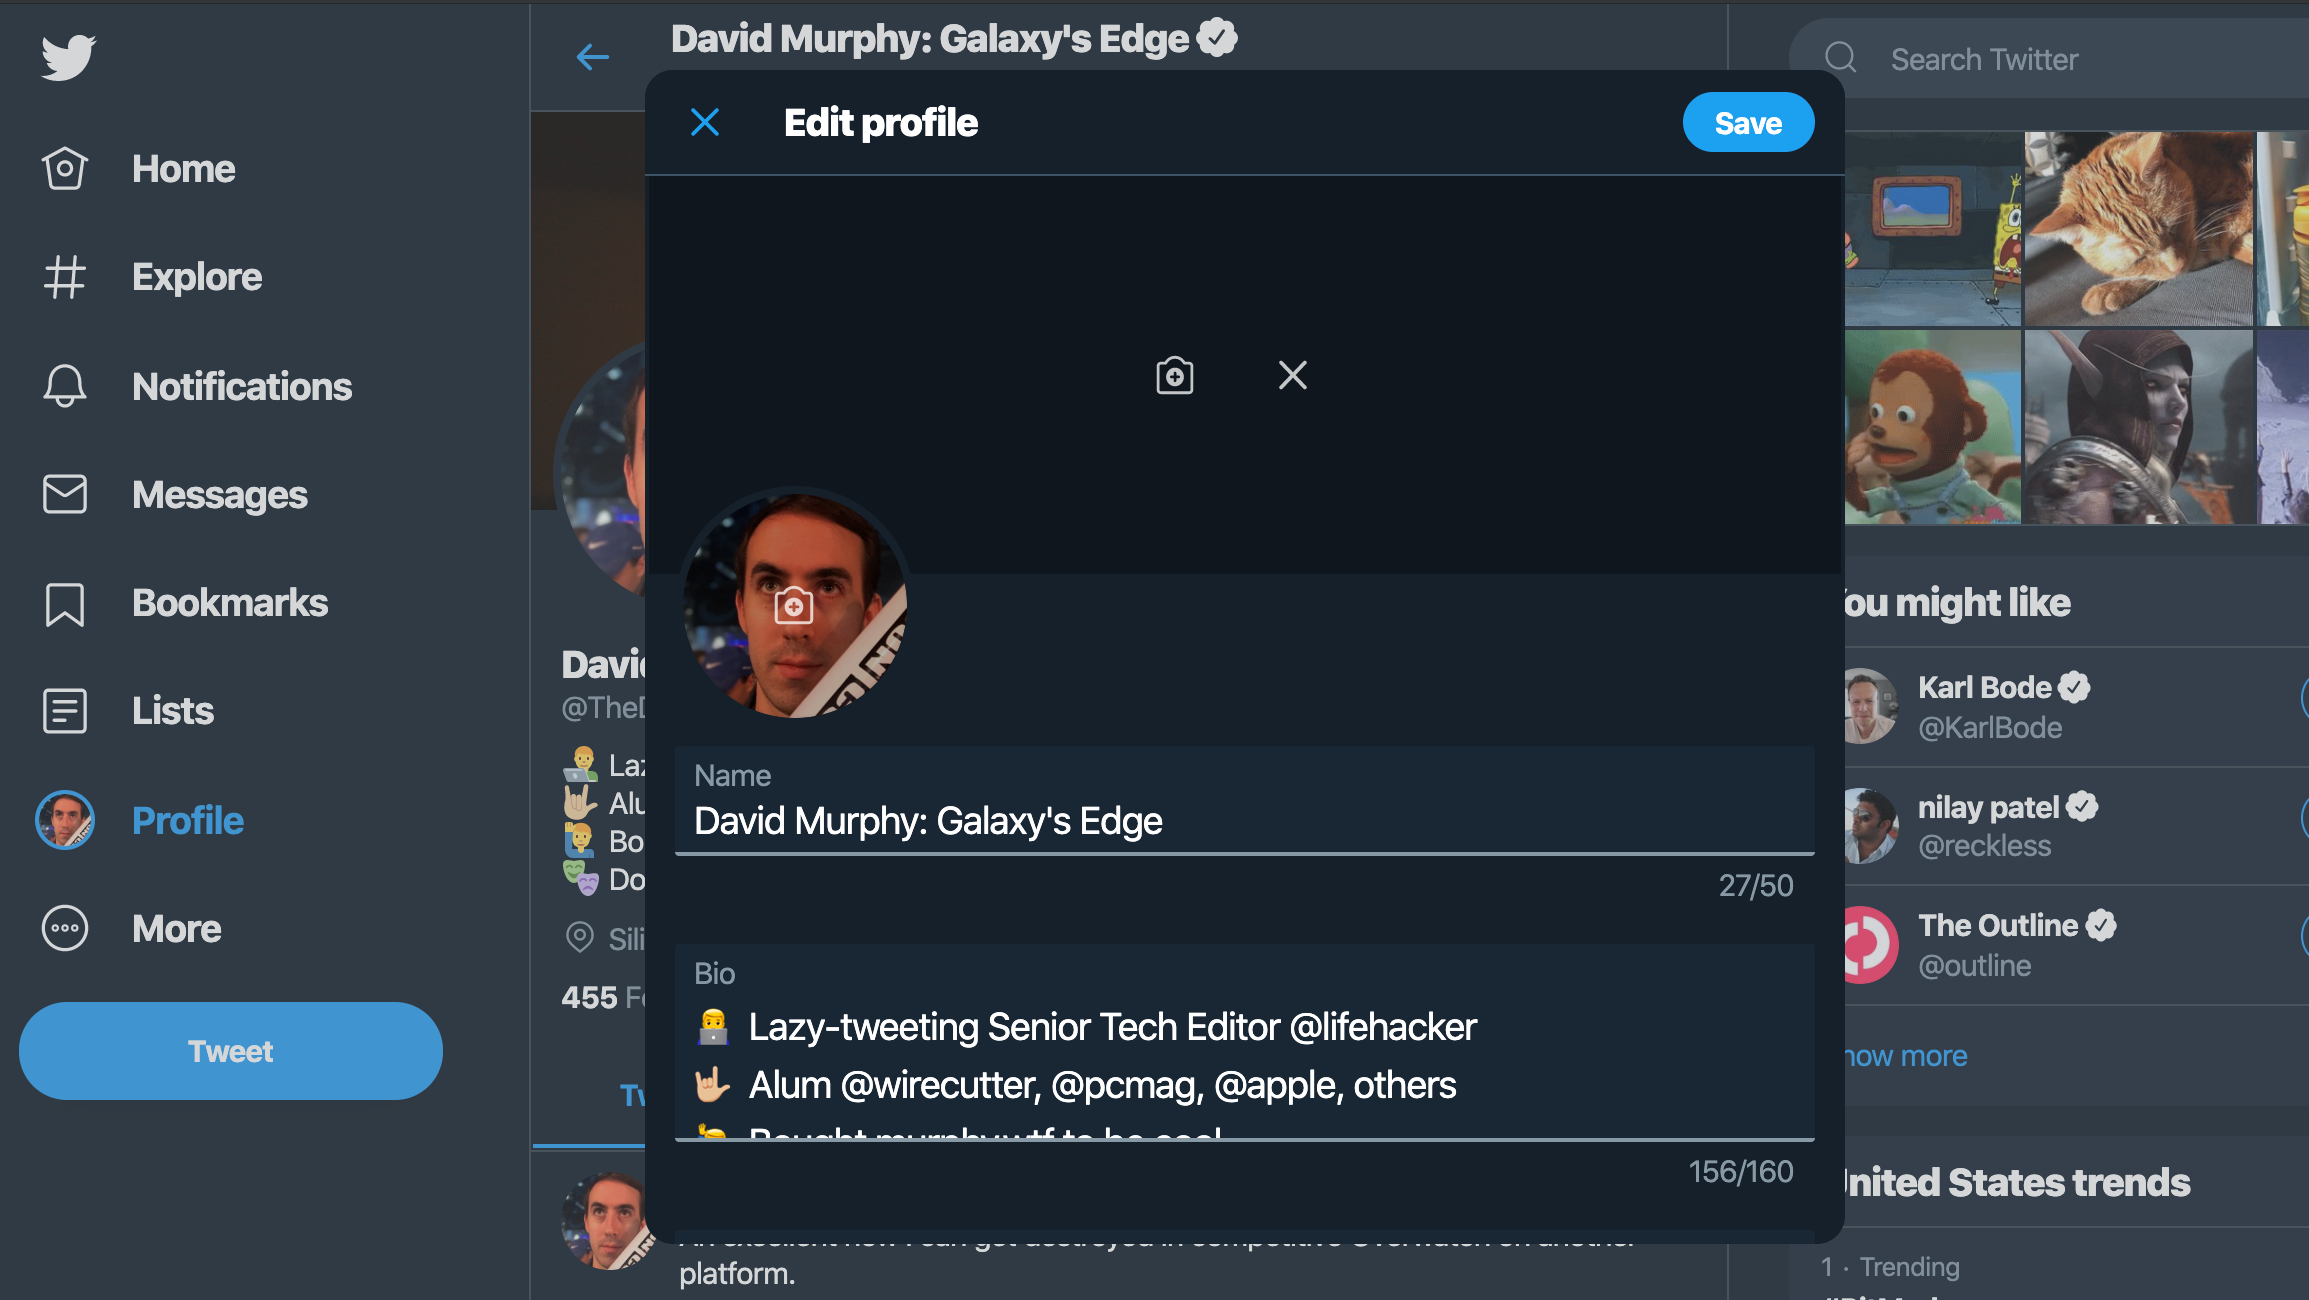 Try This Trick To Make Your Twitter Profile Look A Lot Cleaner